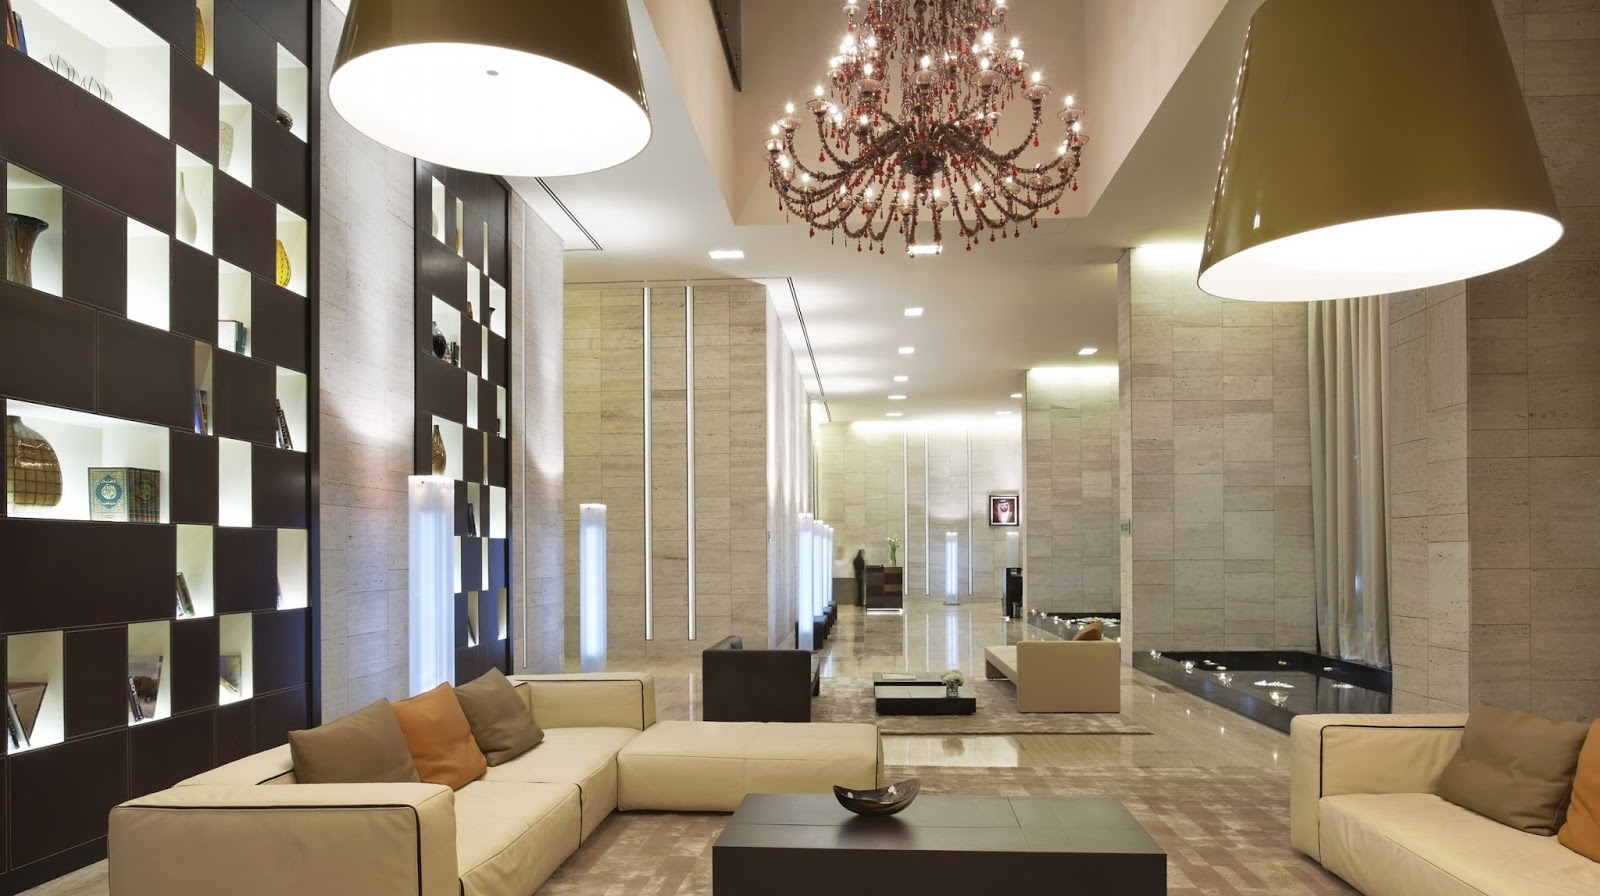 Best interior design companies and interior designers in dubai for Unusual interior design